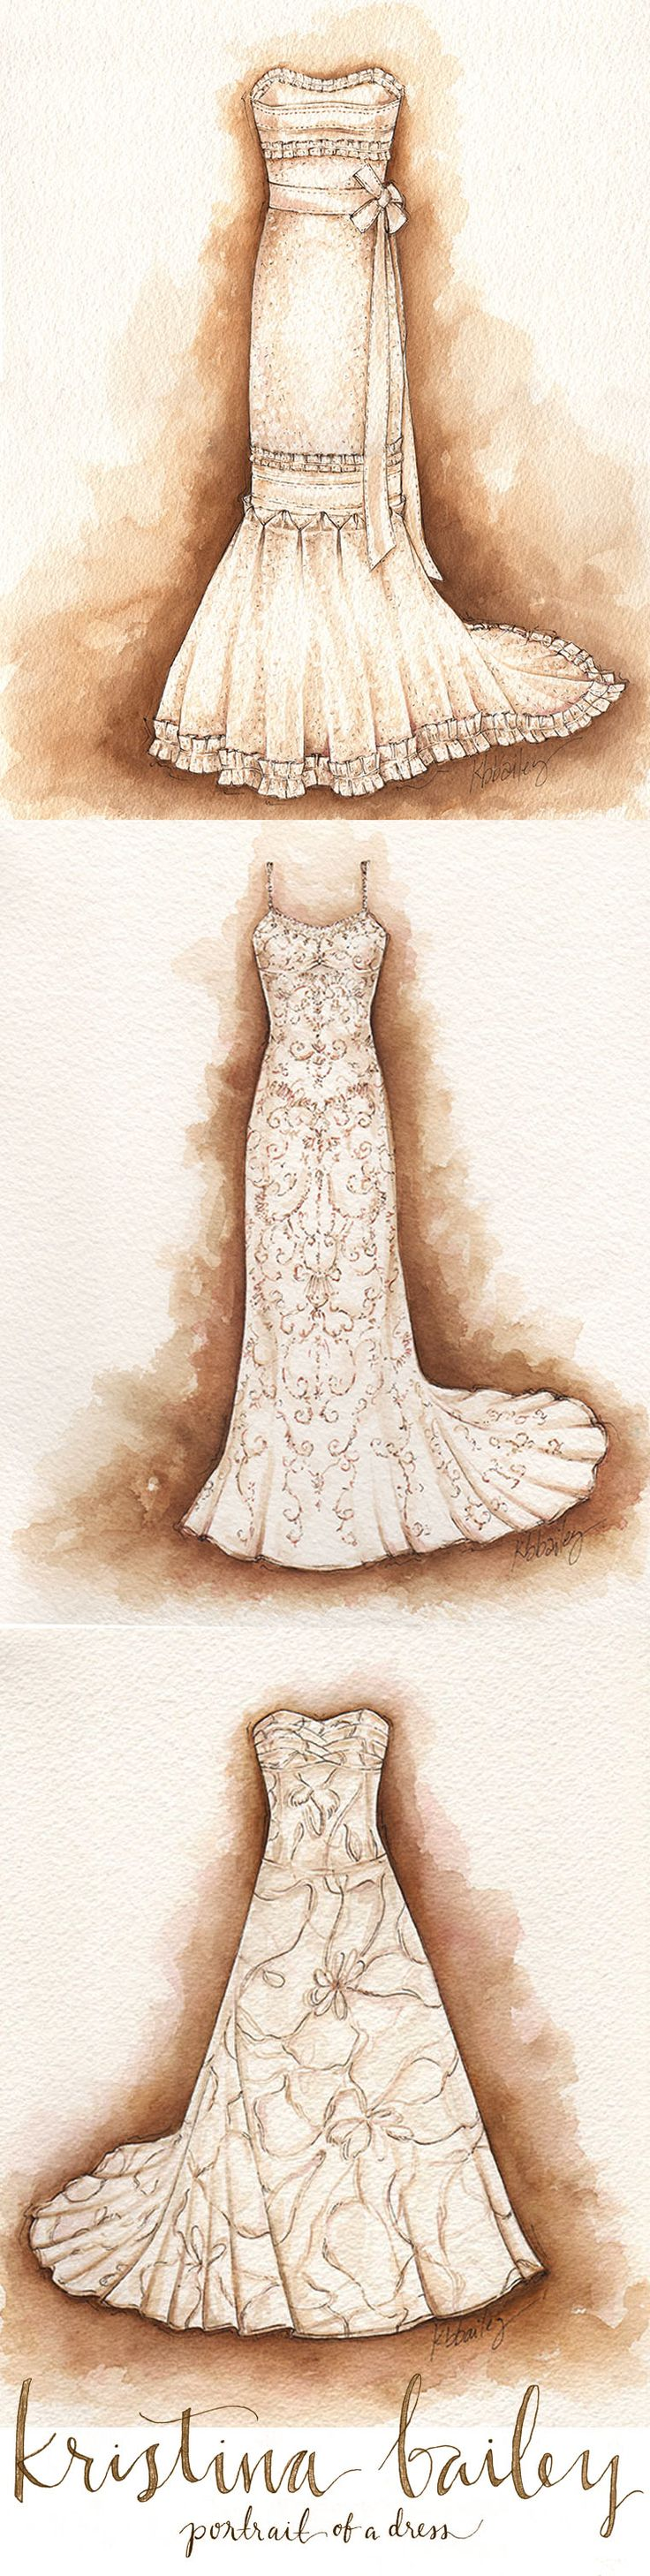 best 25 wedding dress illustrations ideas on pinterest wedding